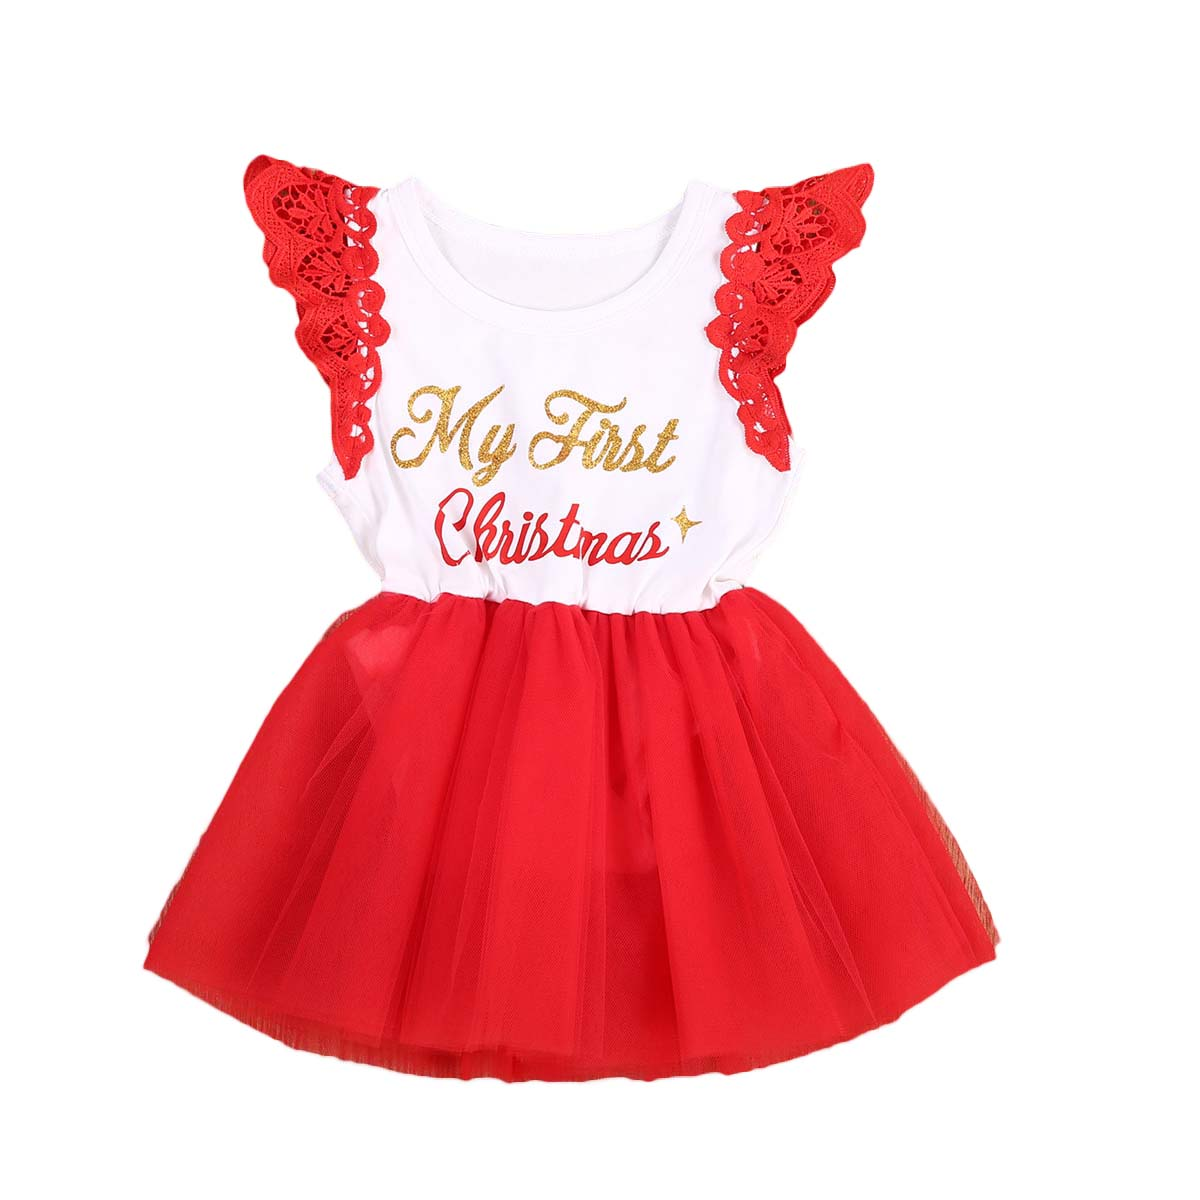 Pudcoco 2017 New Christmas Baby Girls Romper Cute Letter Lace Off shoulder Princess Red Romper Jumpsuit for baby first christmas green fashion off shoulder hollow knee jumpsuit